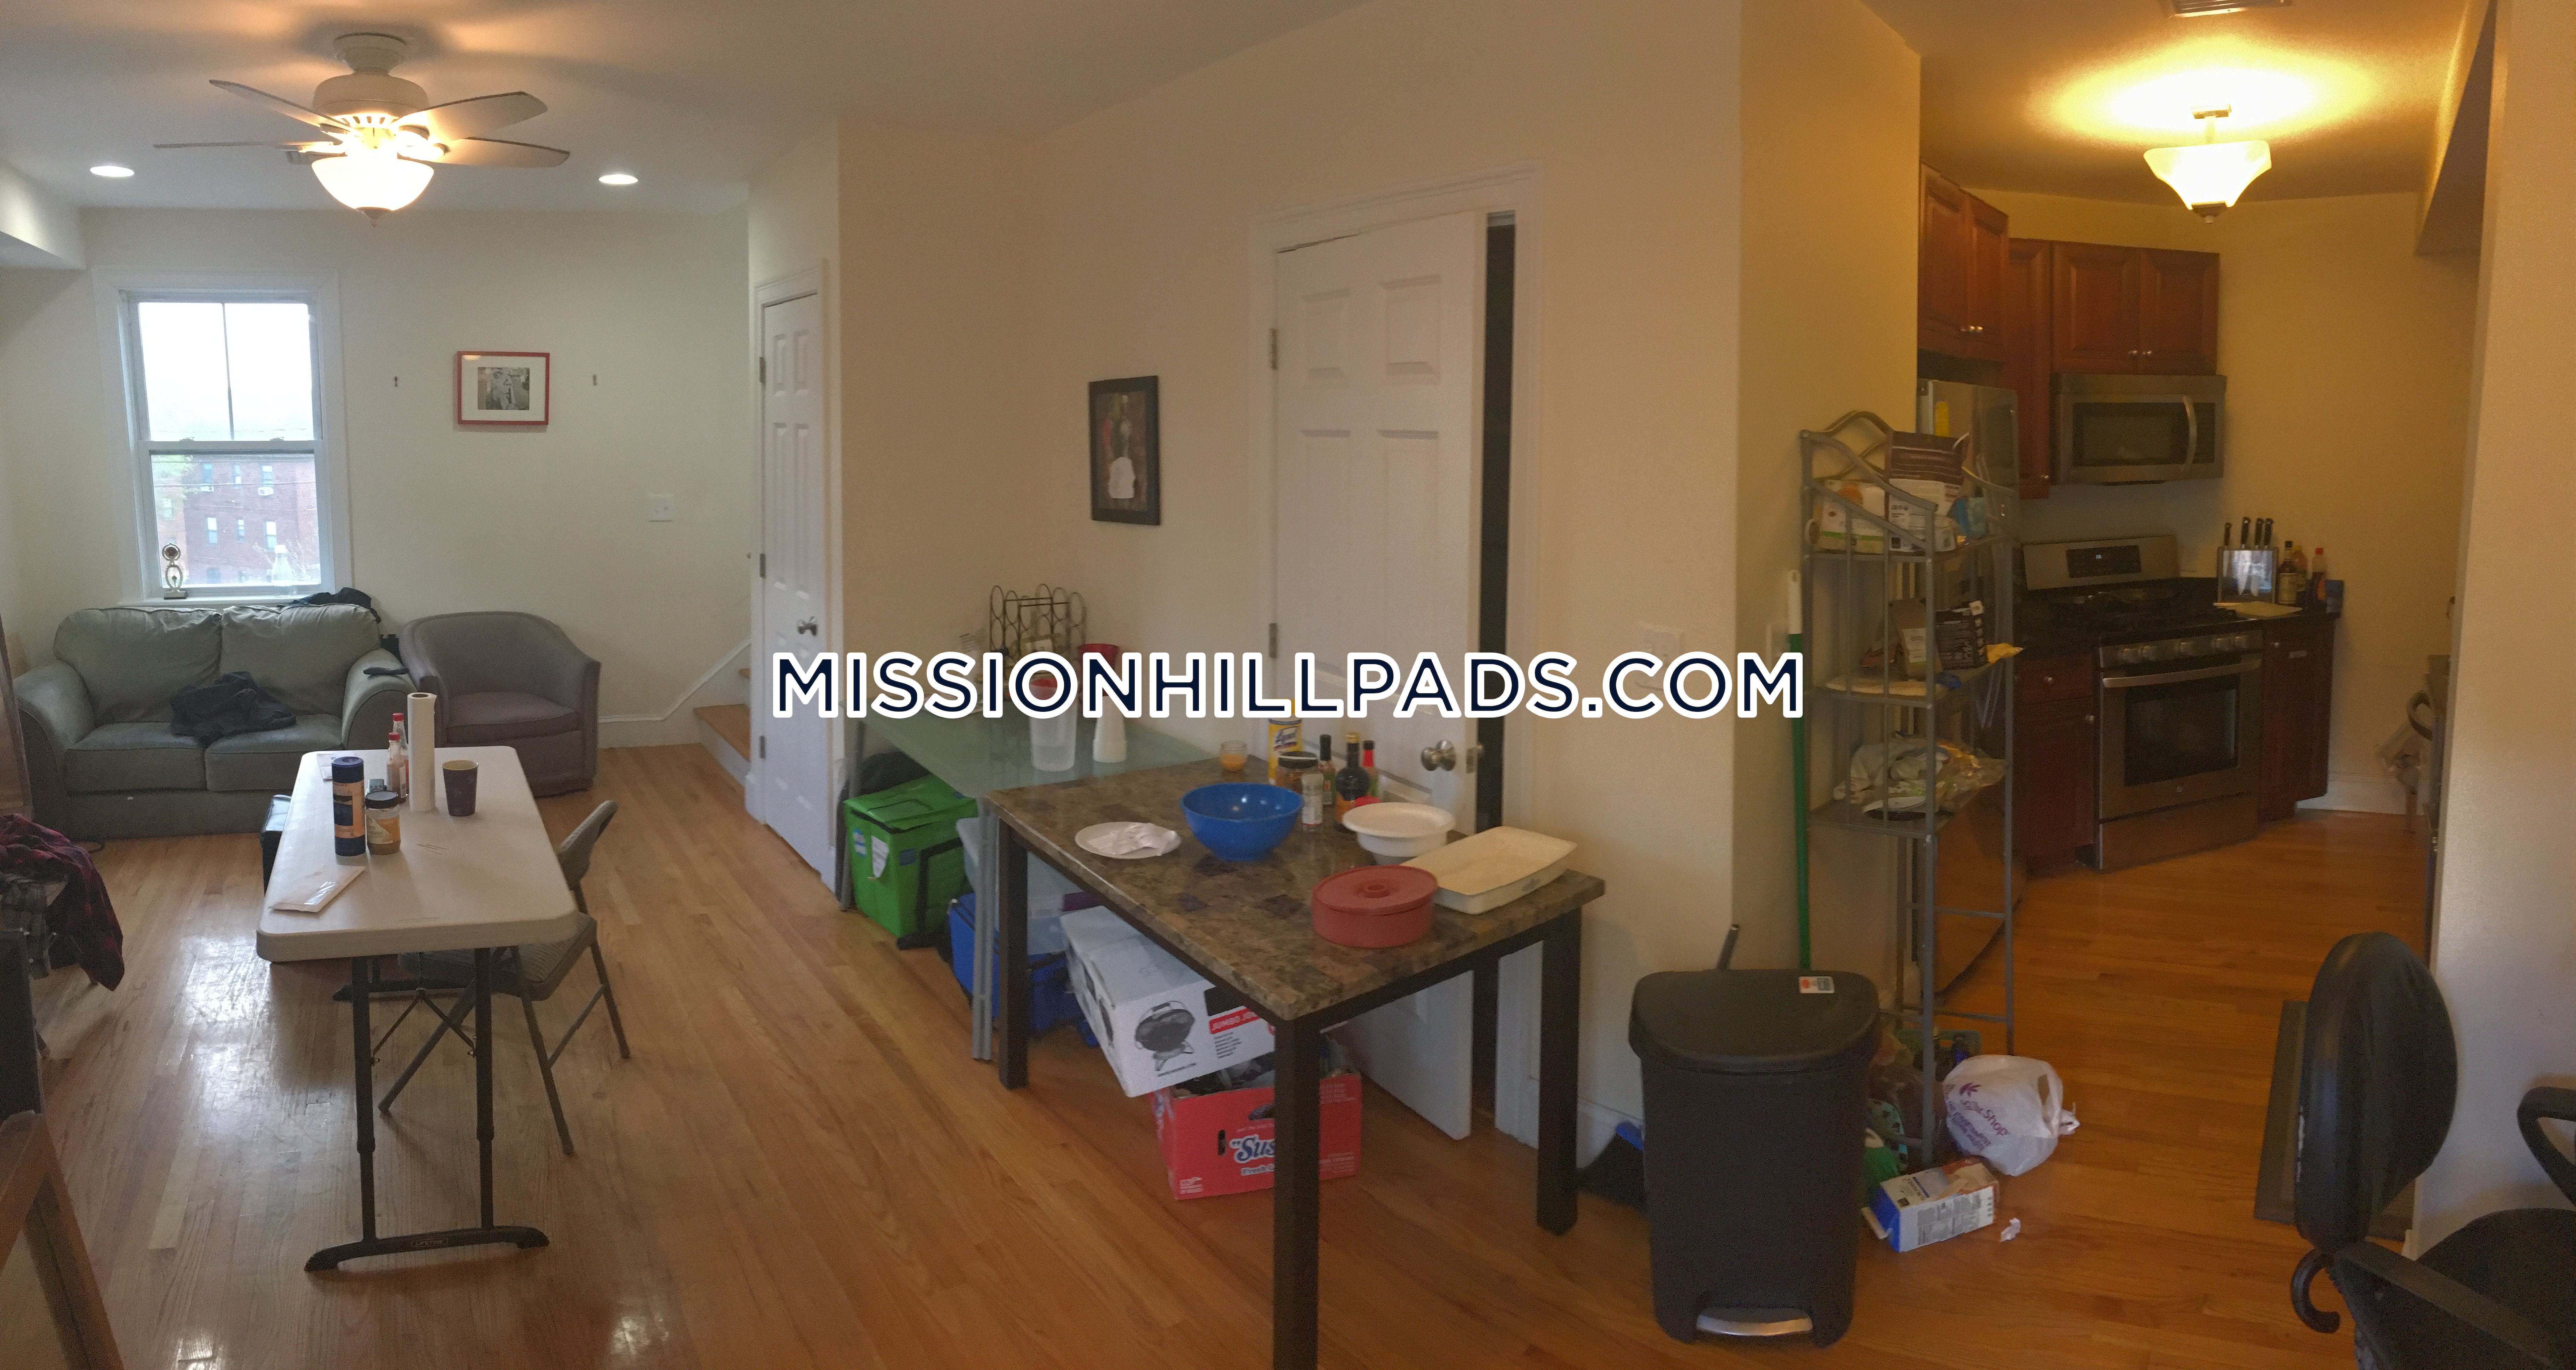 3 Beds 3 Baths - Boston - Mission Hill $3,300